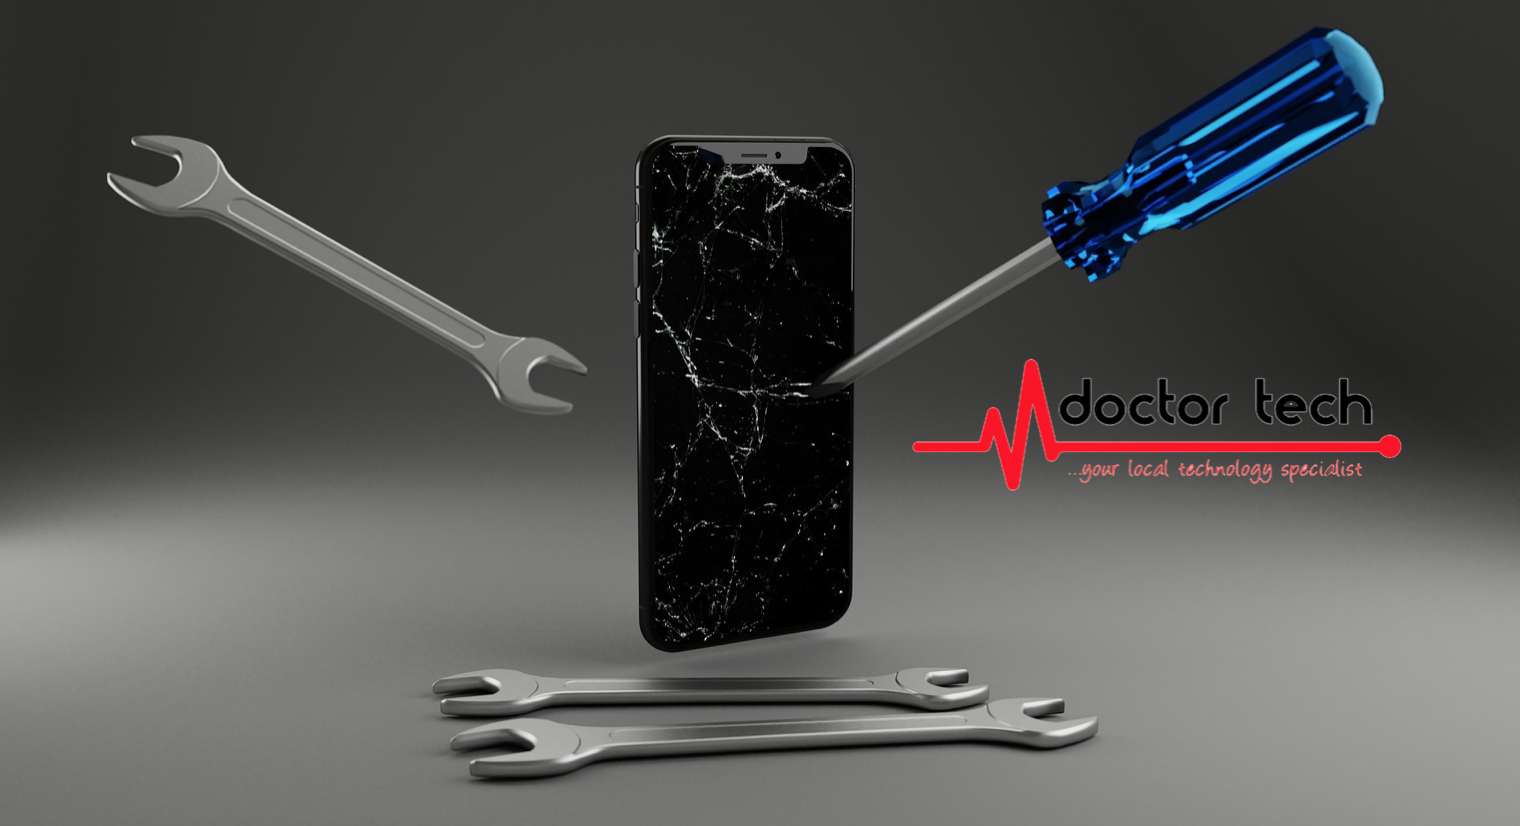 15% OFF PHONE REPAIRS & 25% DISCOUNT ON LABOUR IN STORE - AT DOCTOR TECH (HOVE)